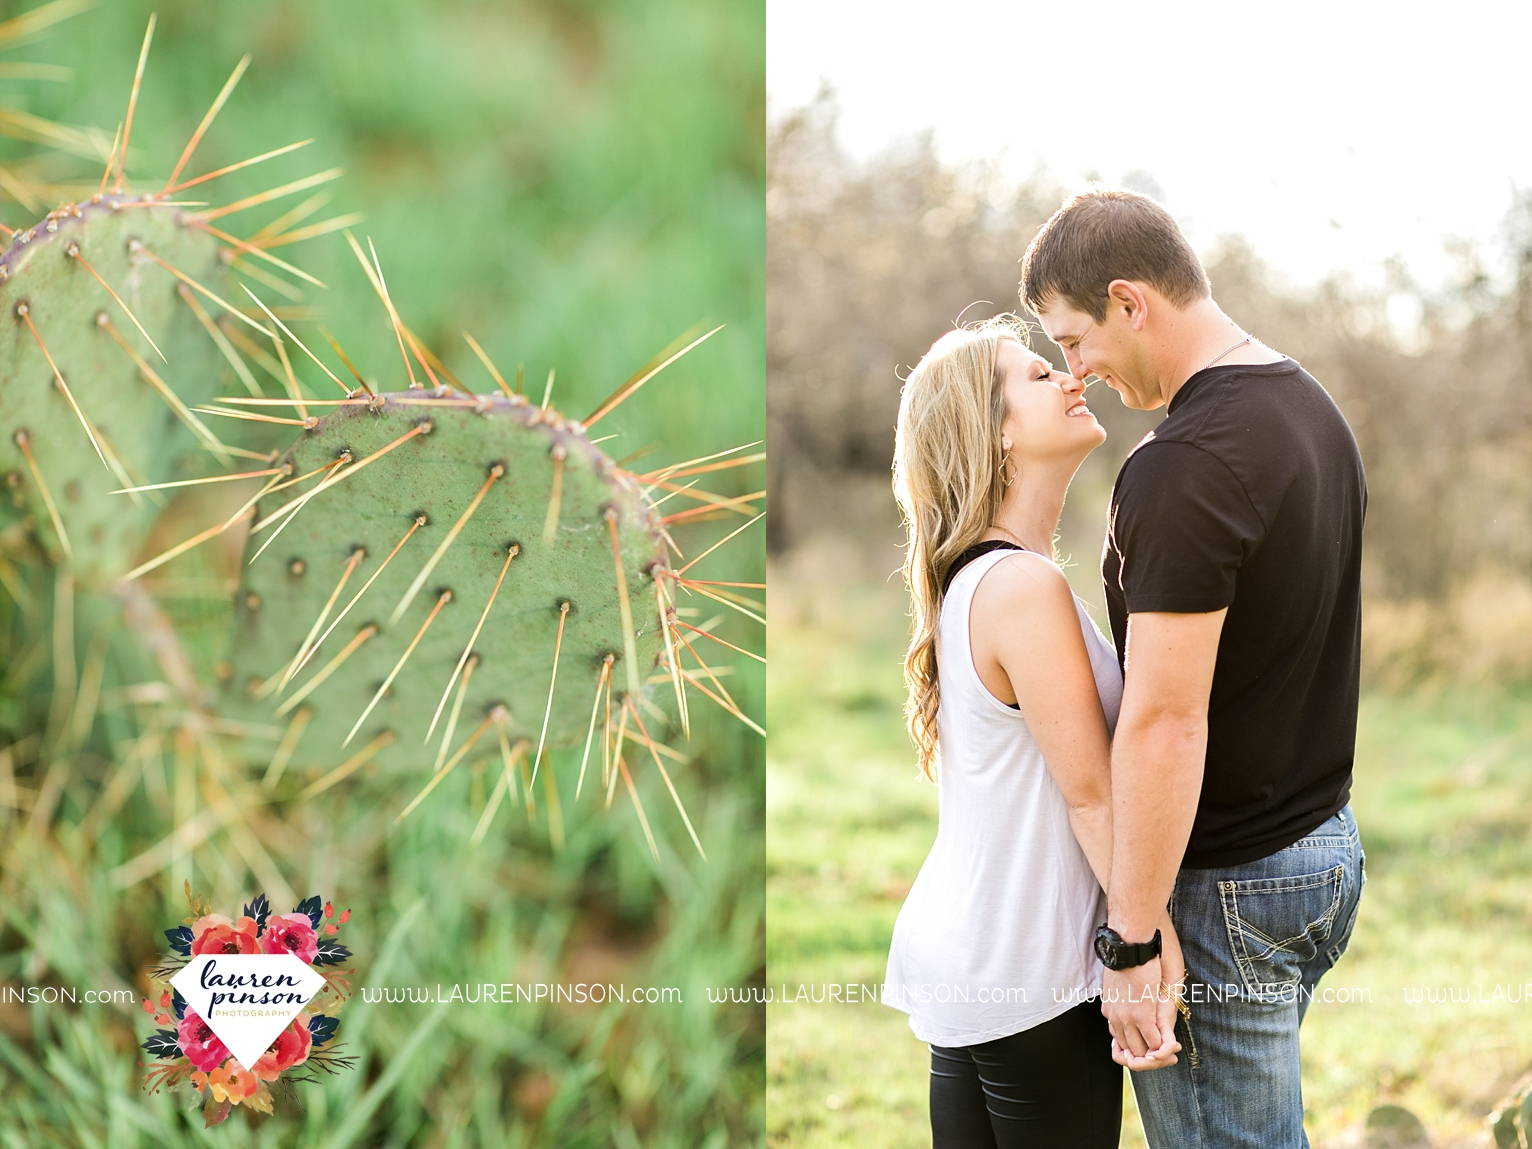 Wichita-falls-texas-country-outdoor-wheat-field-windthorst-engagement-session-and-wedding-photographer-00019.jpg